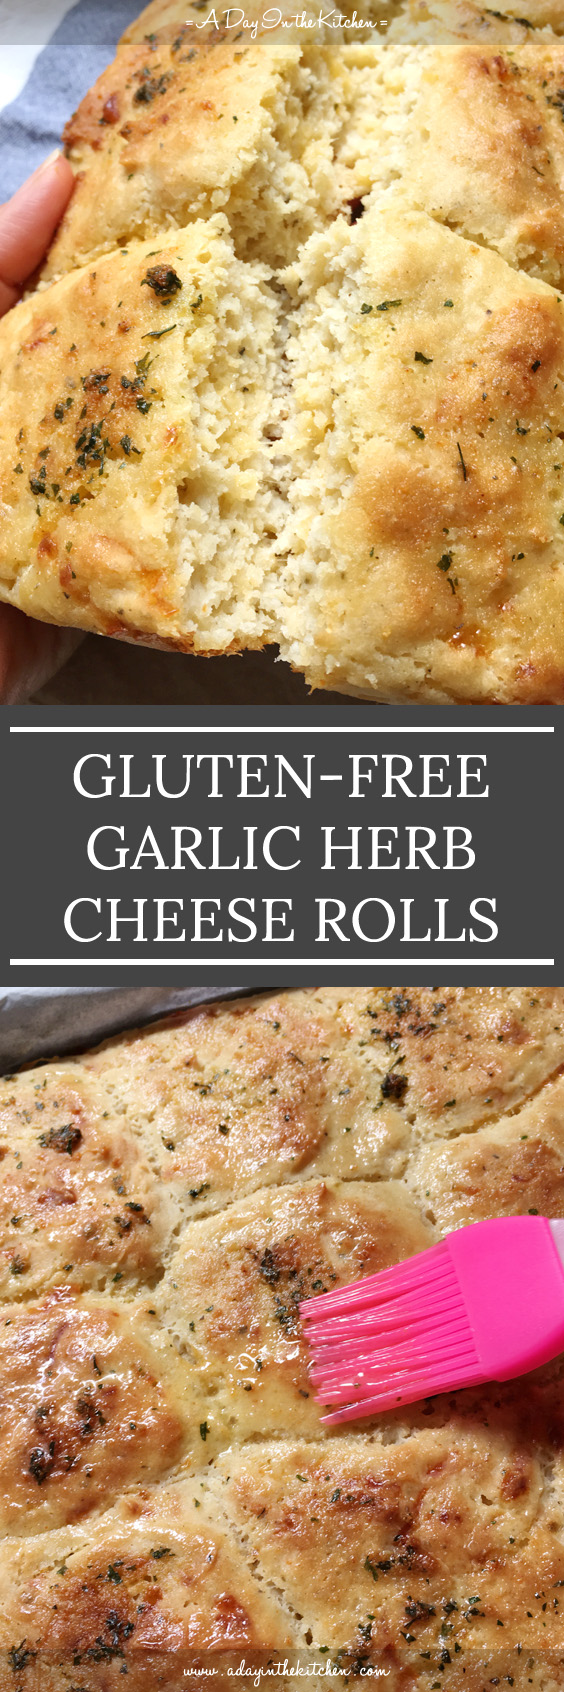 These Garlic Herb Cheese Rolls are tender, tasty, and gluten-free! They are the perfect companion to any meal! #glutenfree #garlicherbcheeserolls #pullapartrolls #rolls #buns #garlicrolls #cheeserolls #herbrolls #sidedishes #glutenfreerolls